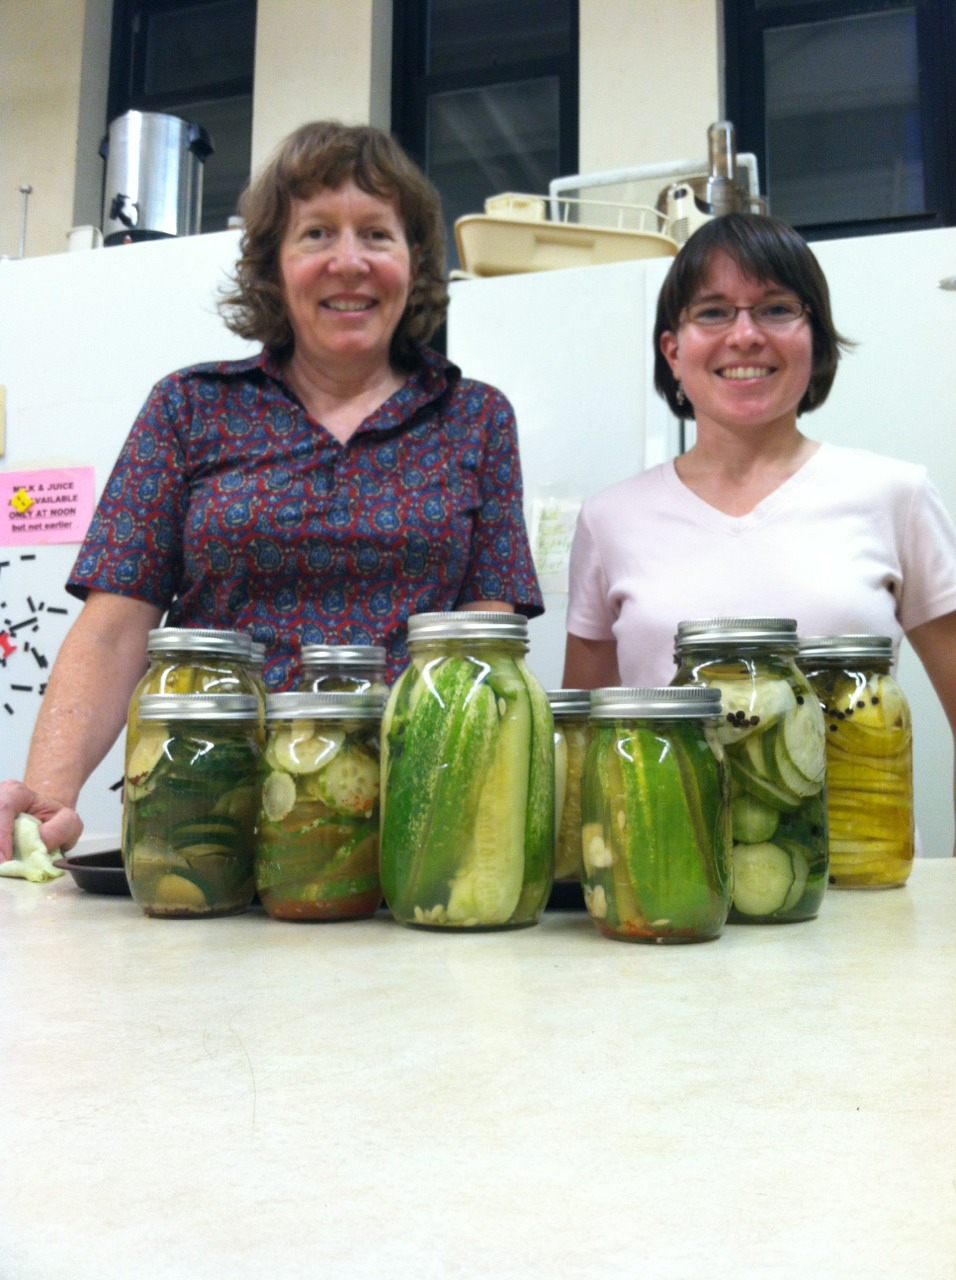 Pickling workshop with cucumbers from the PS1 garden.